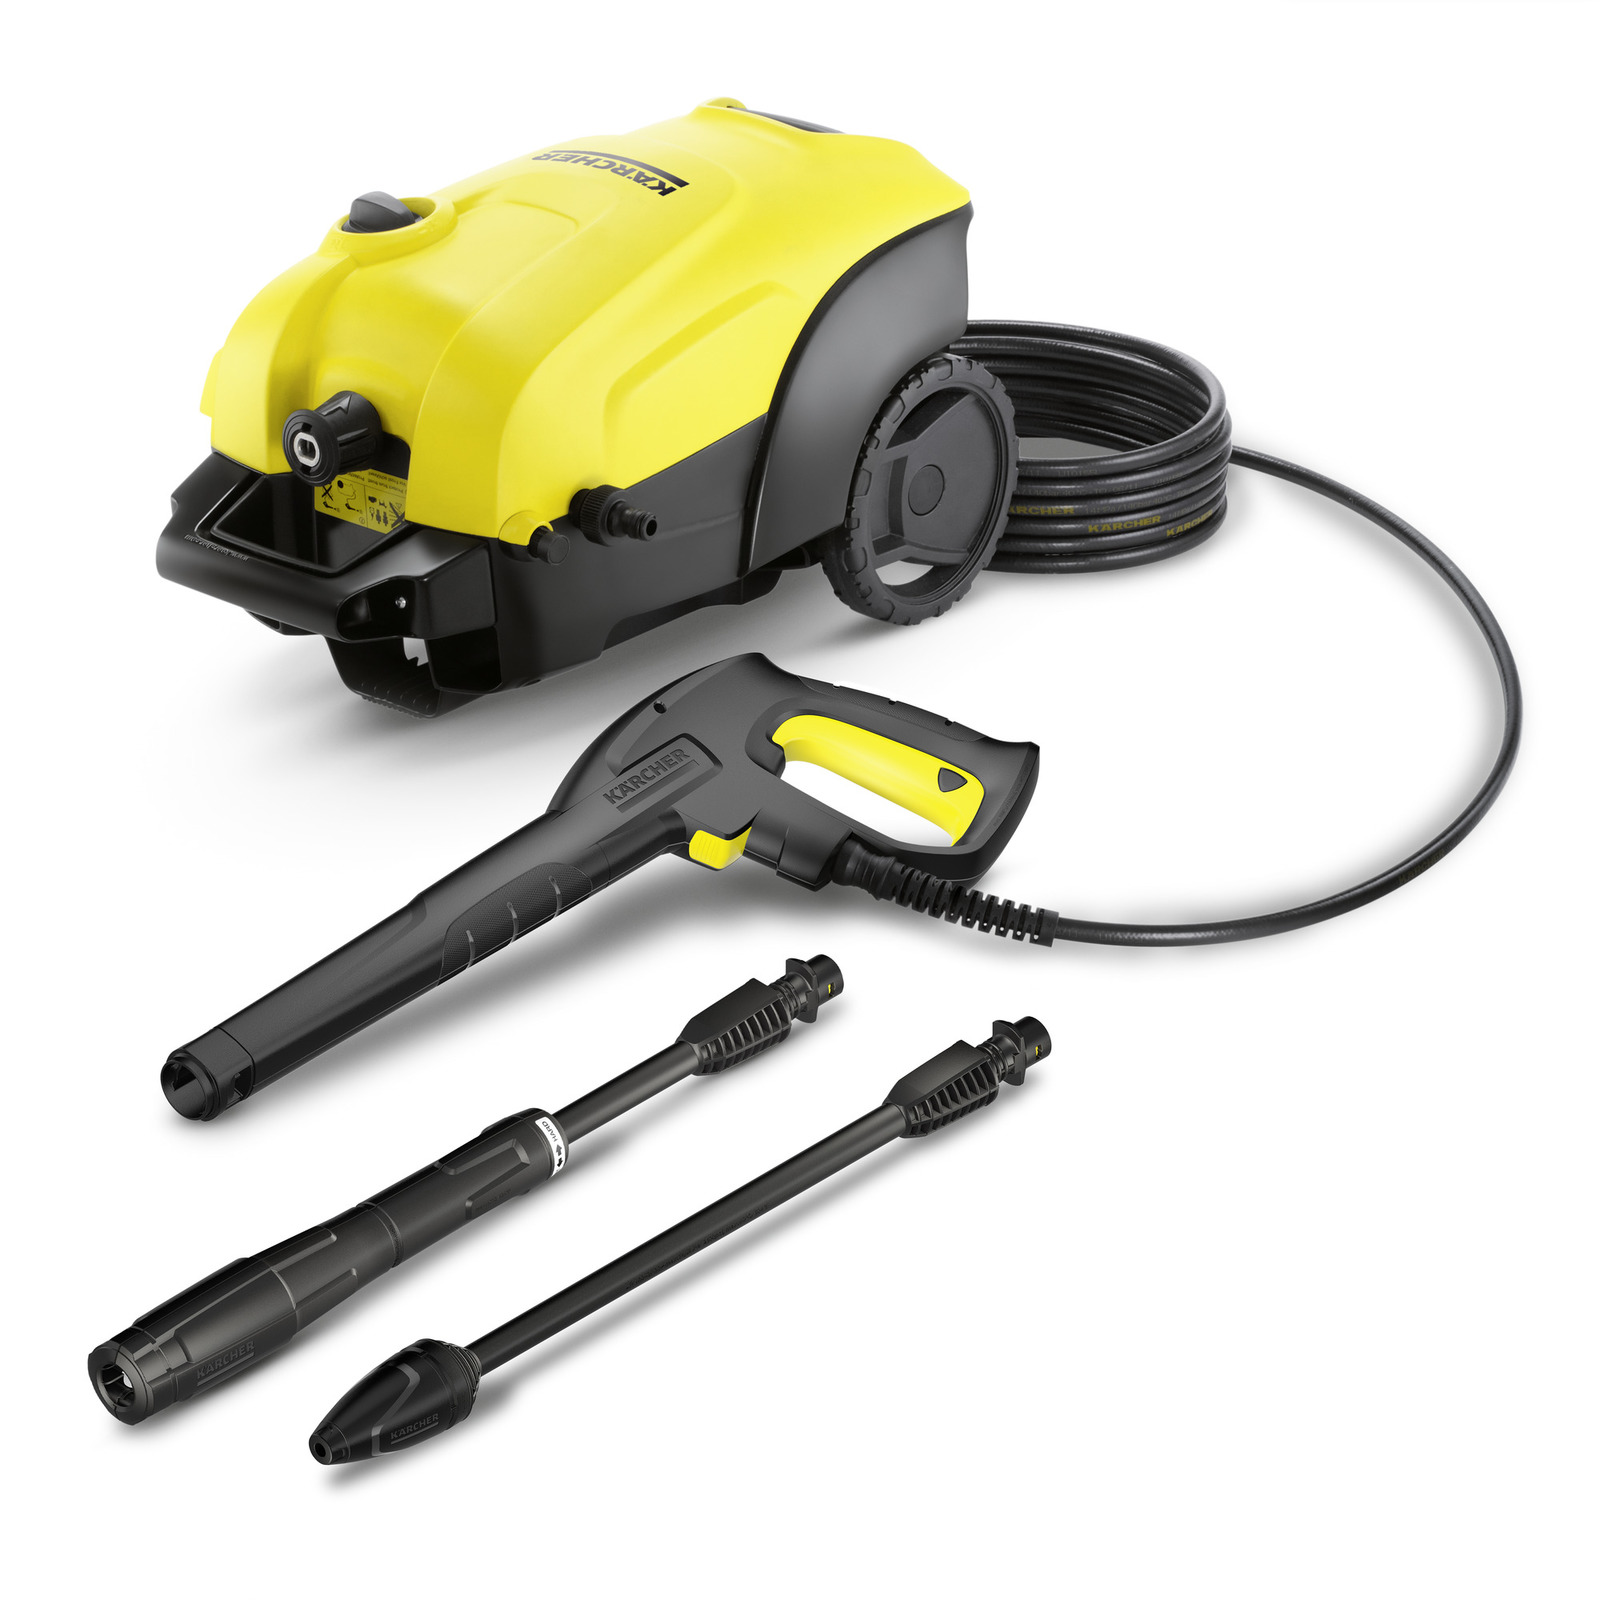 K4 Compact Pressure Washer Krcher Uk Aro Wiring Diagram K 4 16373110 Https Home Garden Washers 16373110html The Powerful Is Small And Easy To